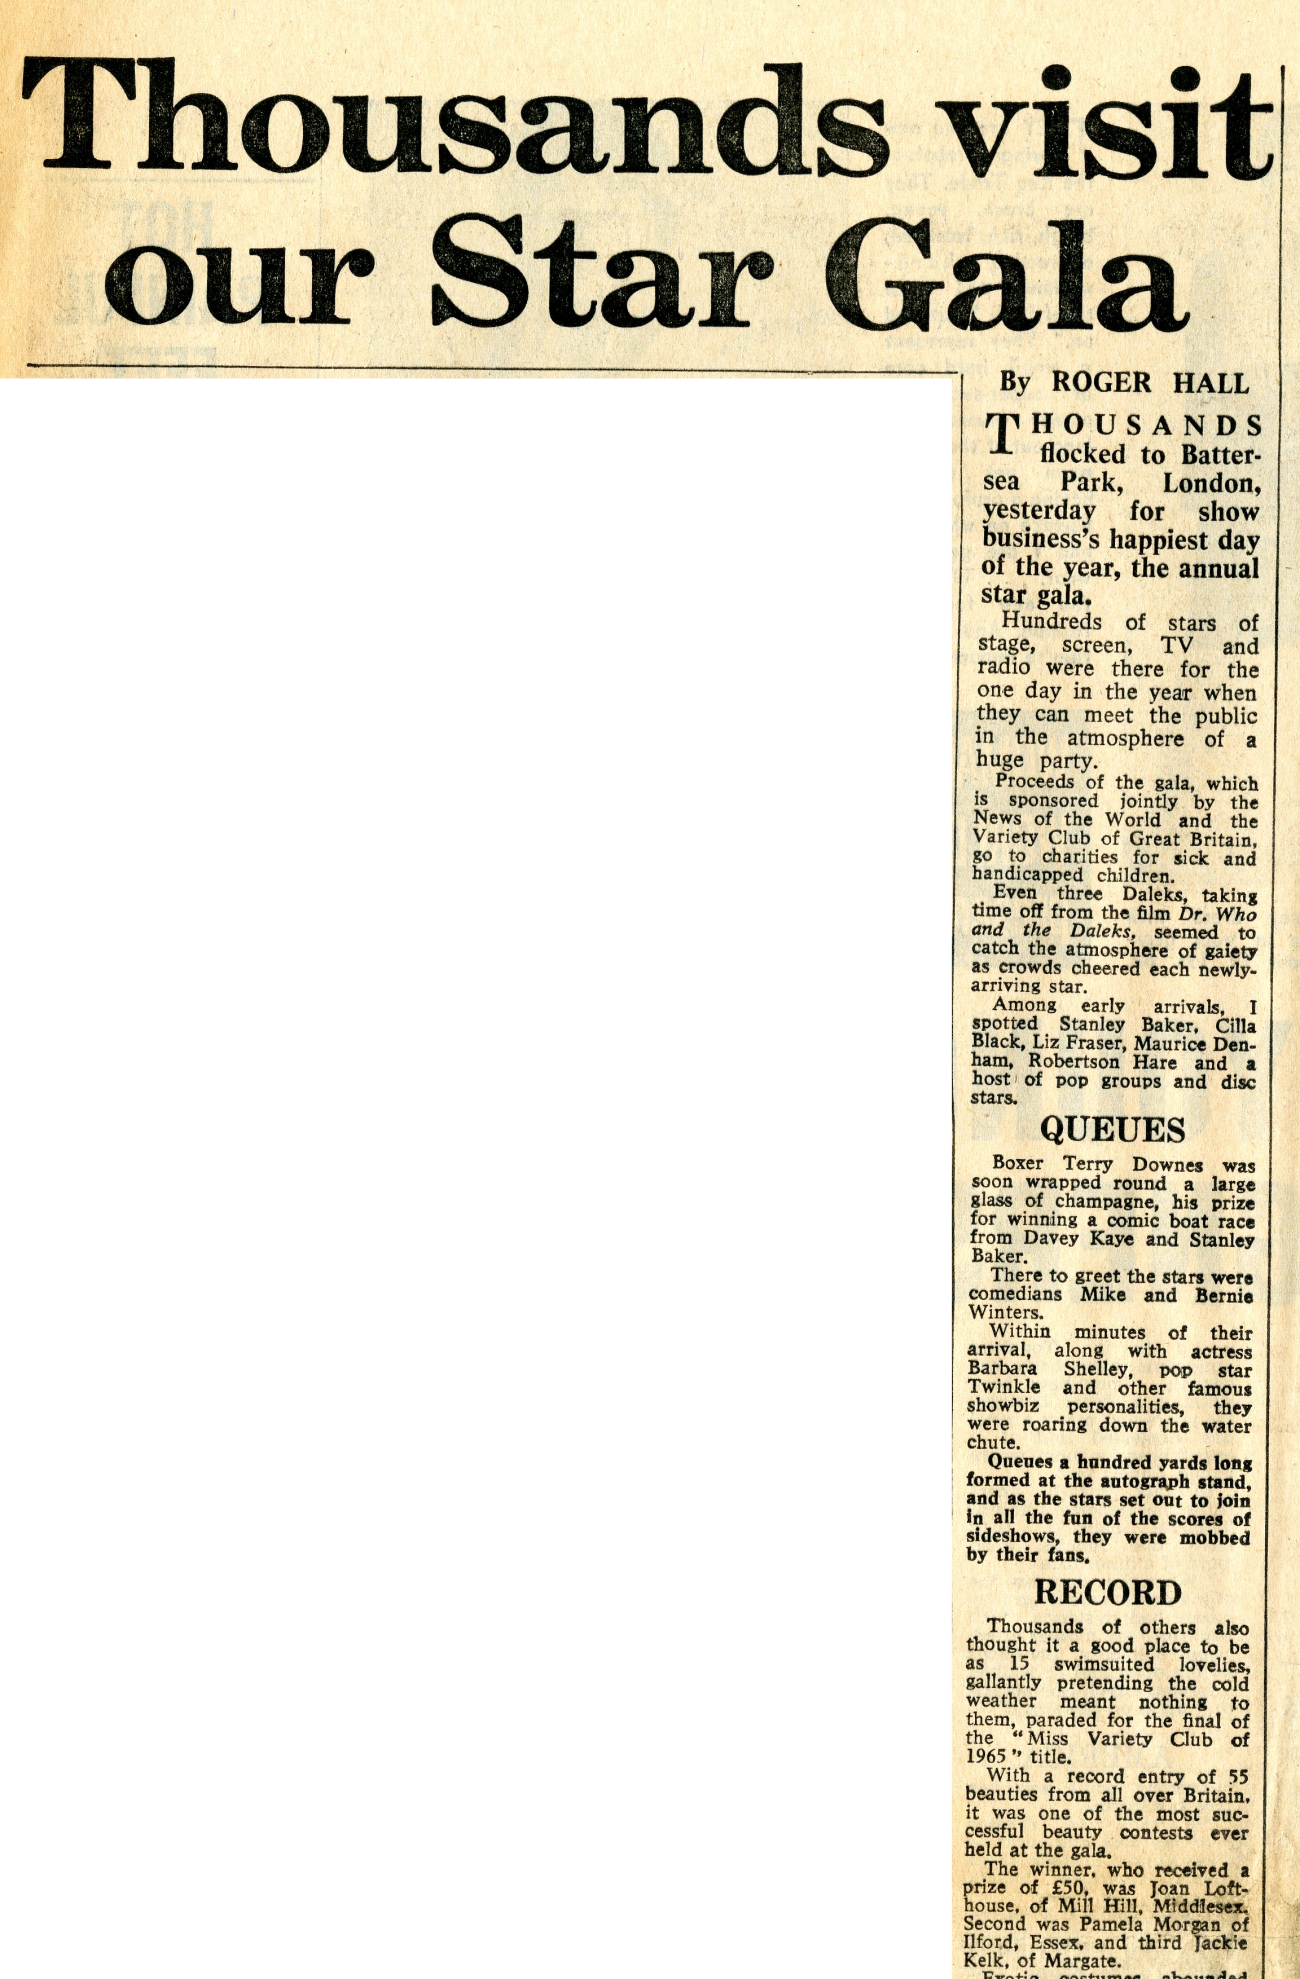 News of the World, May 30, 1965